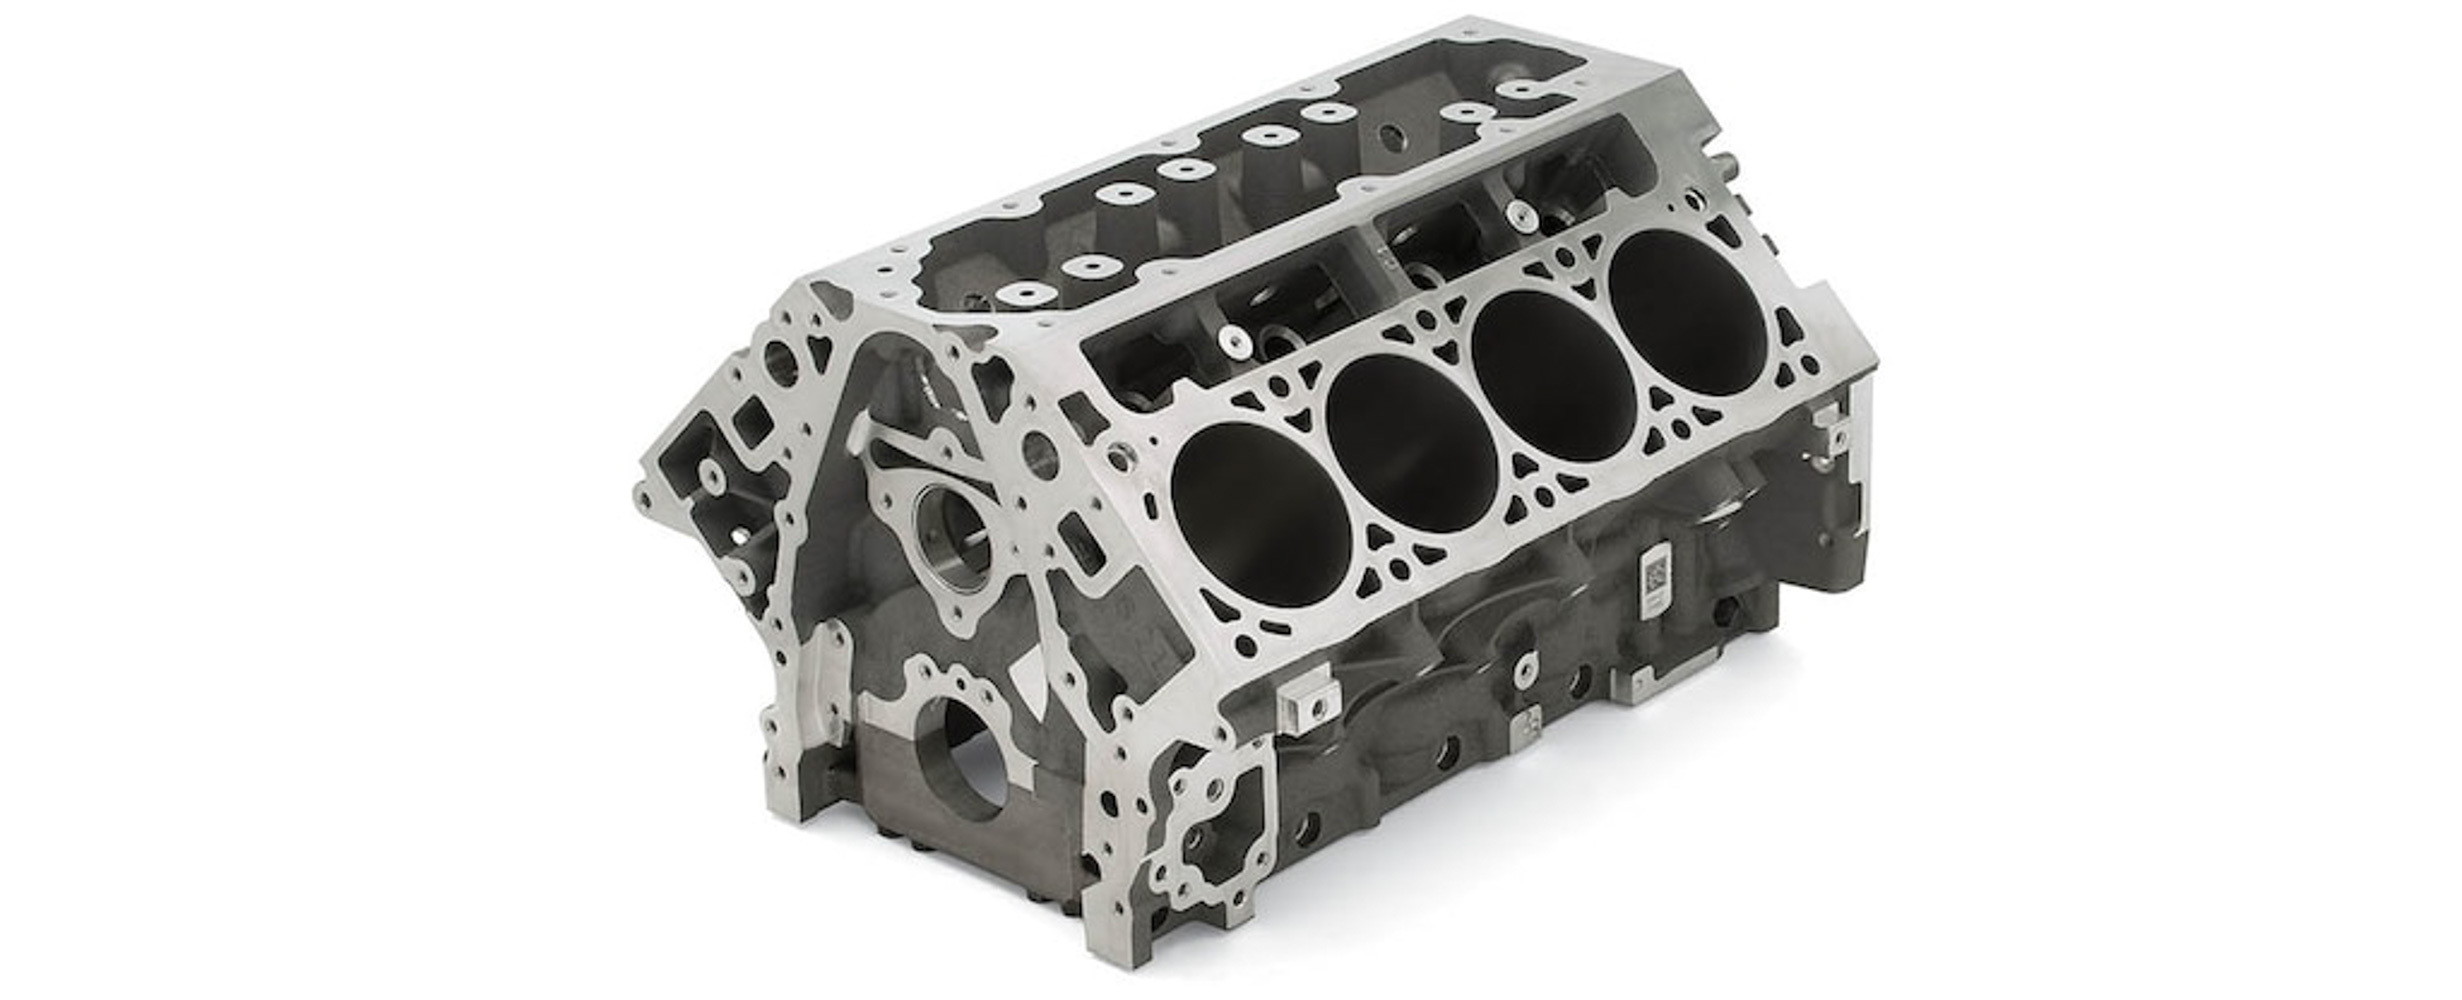 CHEVROLET PERFORMANCE Alm Engine Block - Bare 6.2L LSA